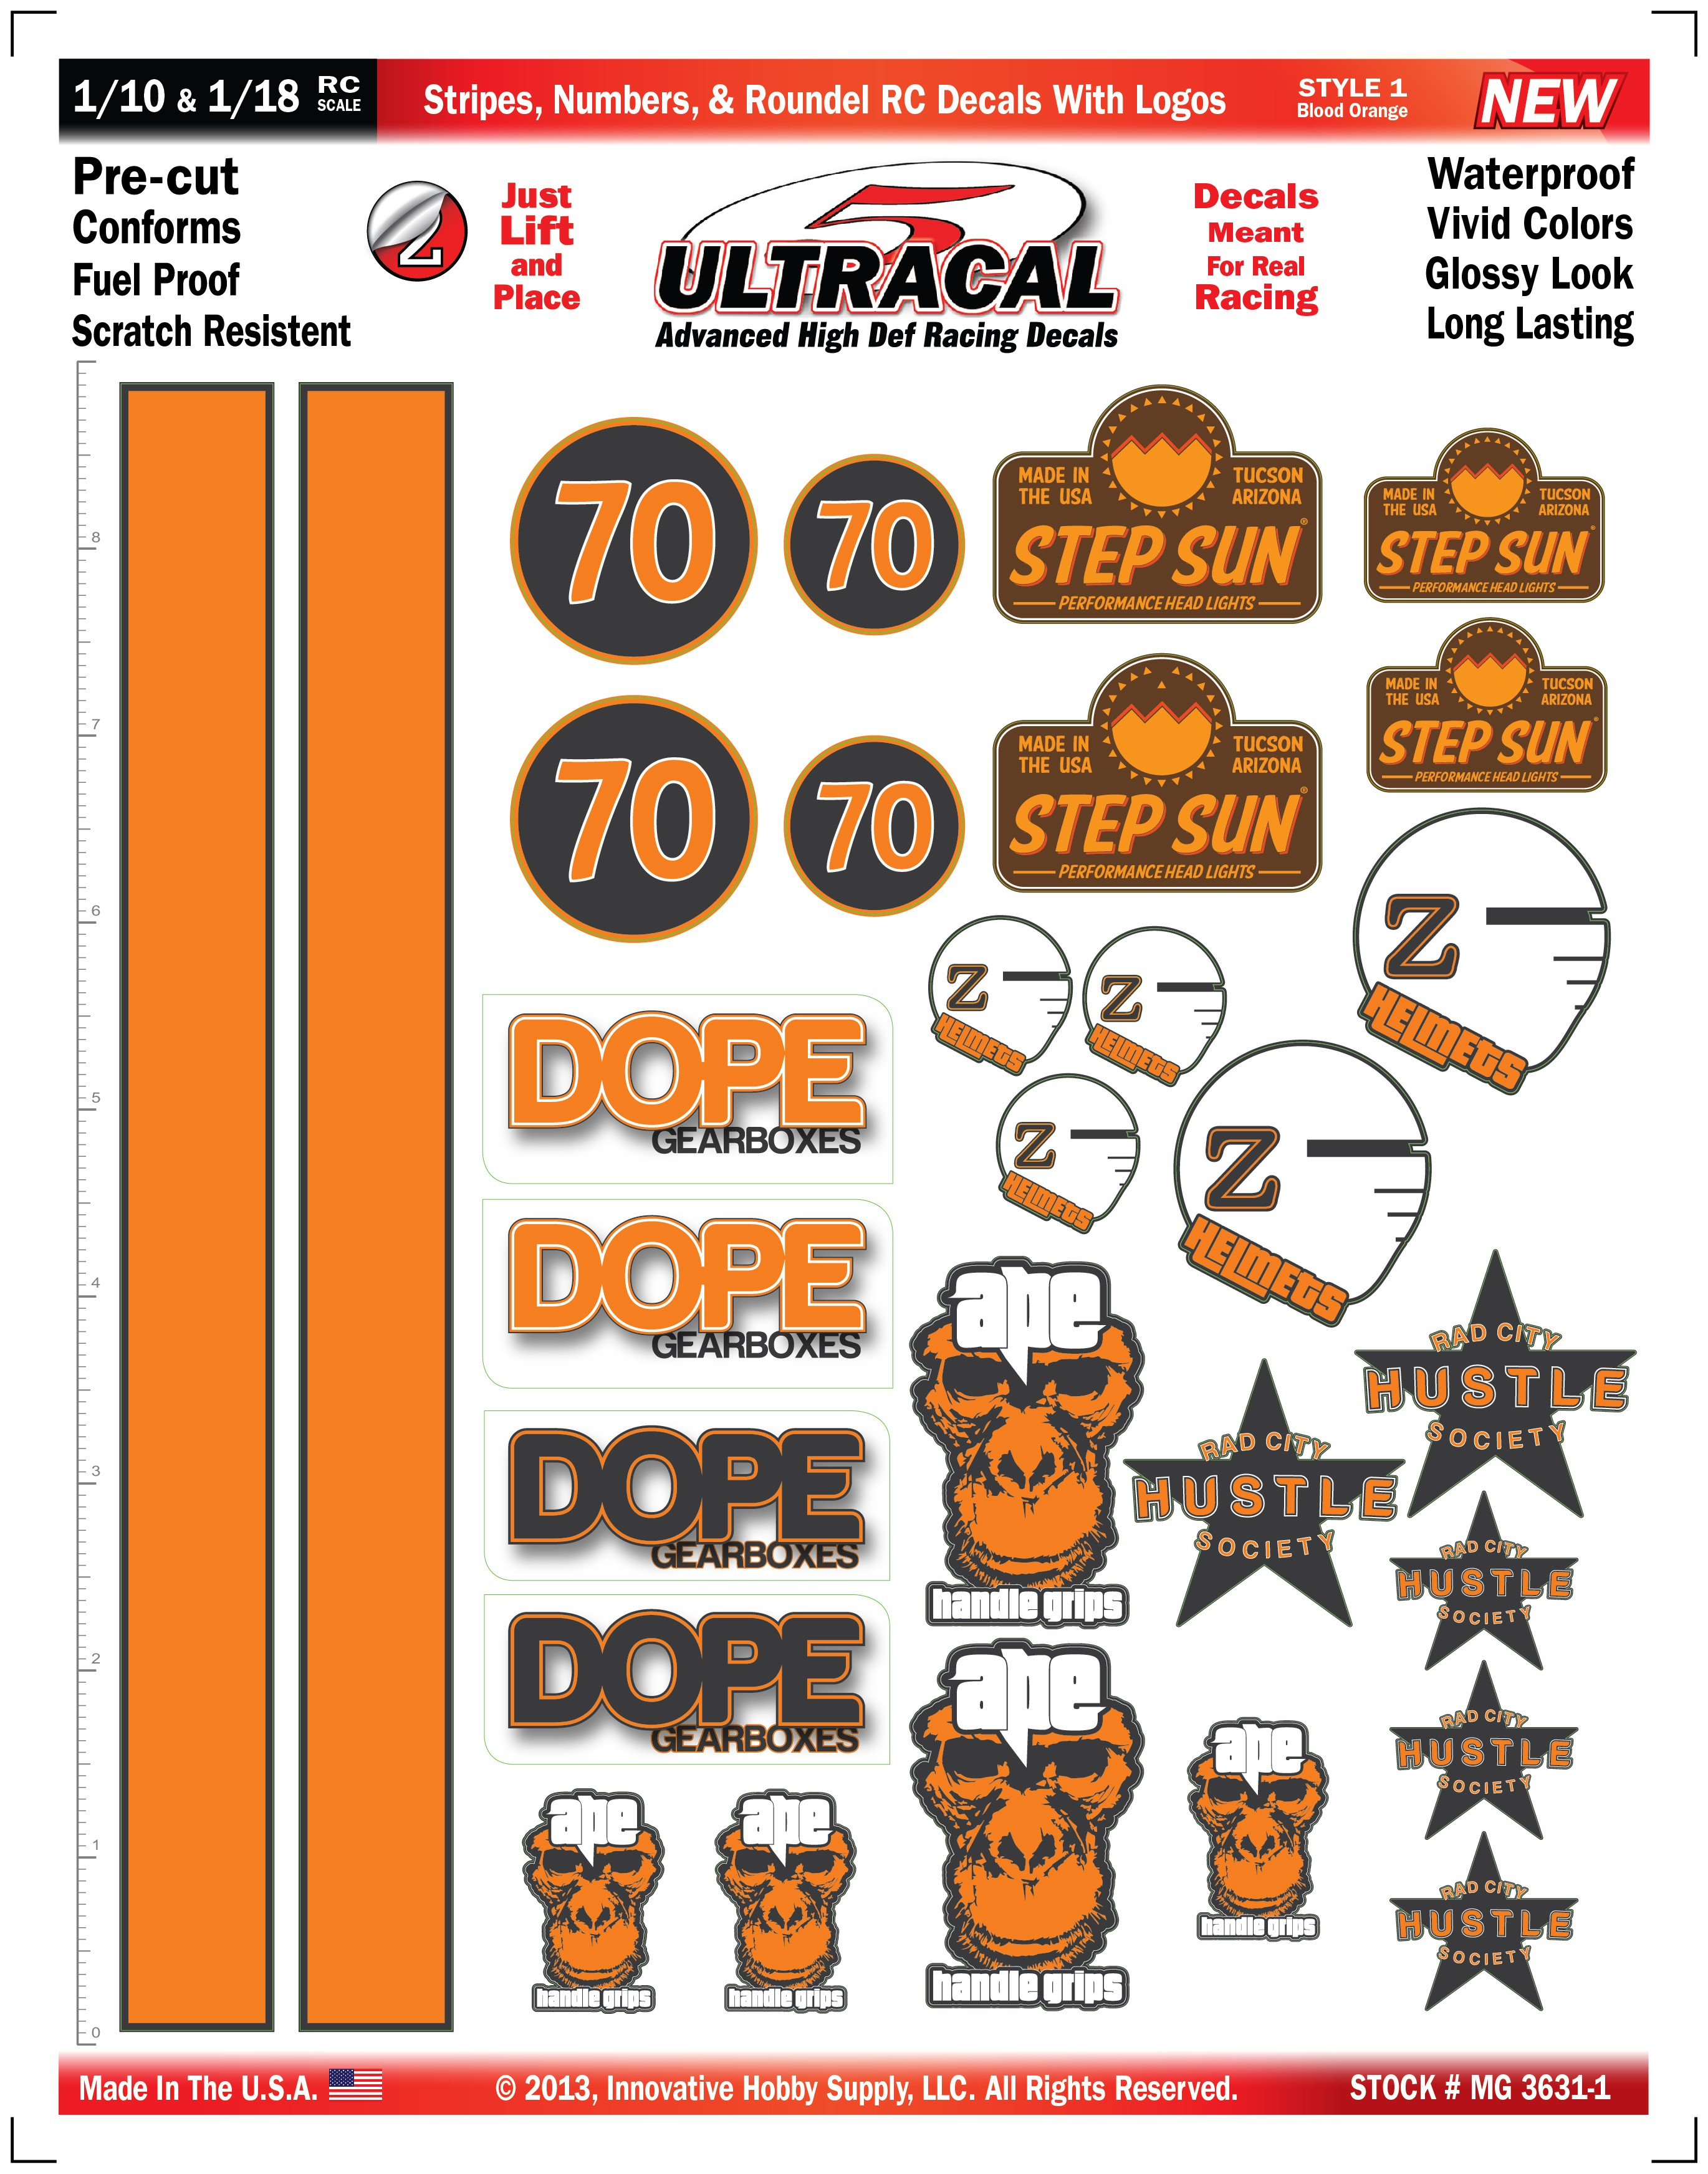 MG 3631-1 Ultracal Blood Orange Stripes, Numbers, & Roundel RC Decals with Logos for 1:10 and 1:18 Scale